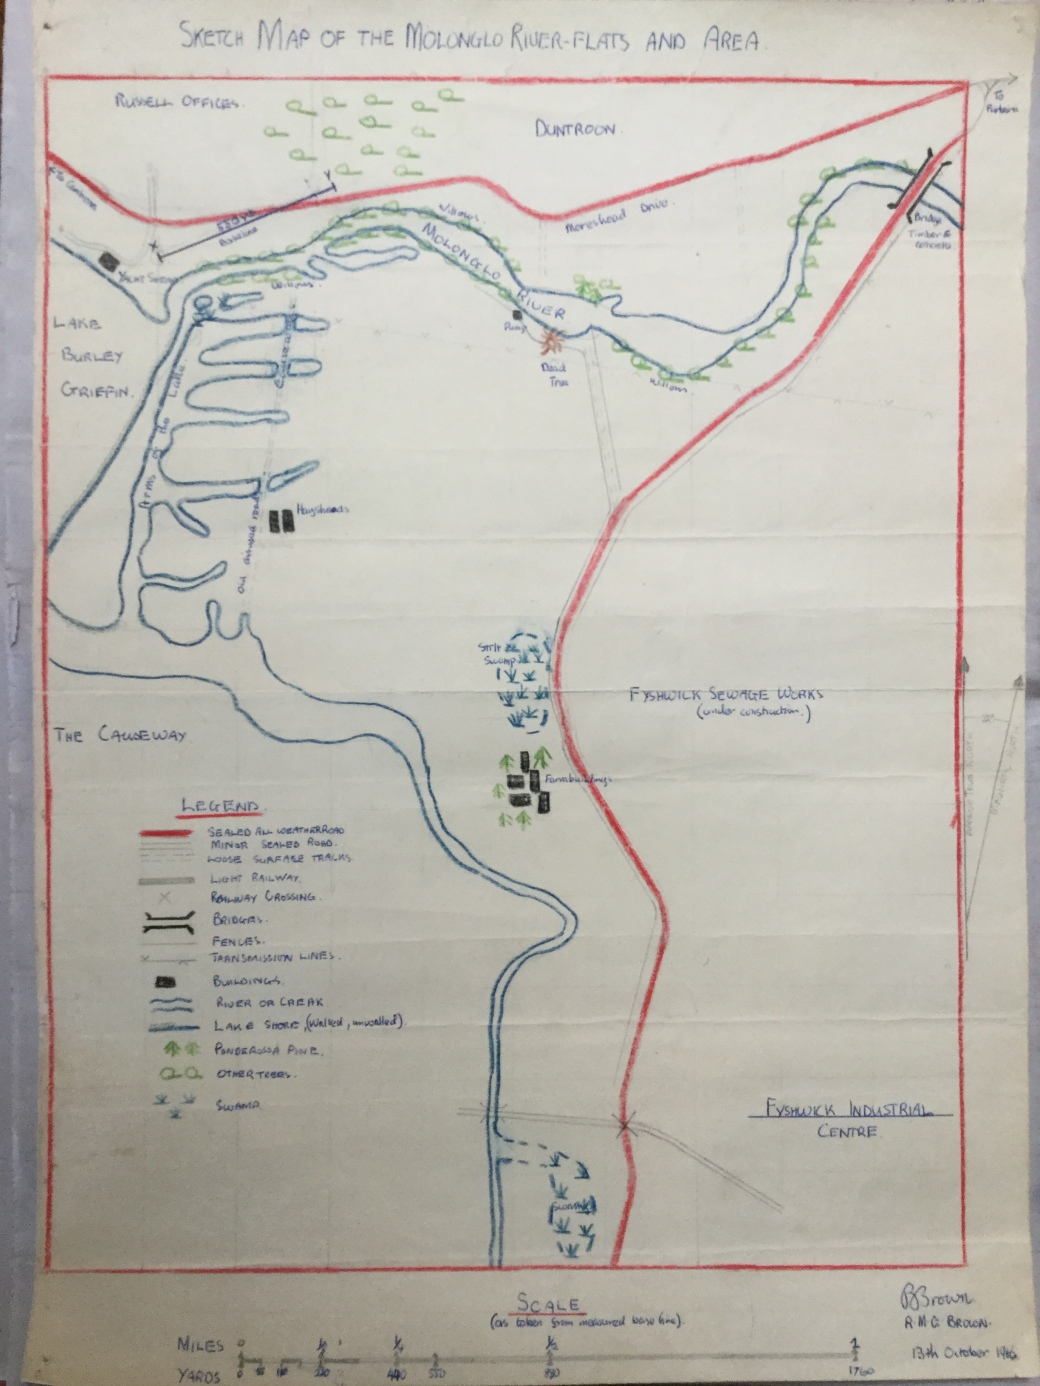 Sketch map of survey area